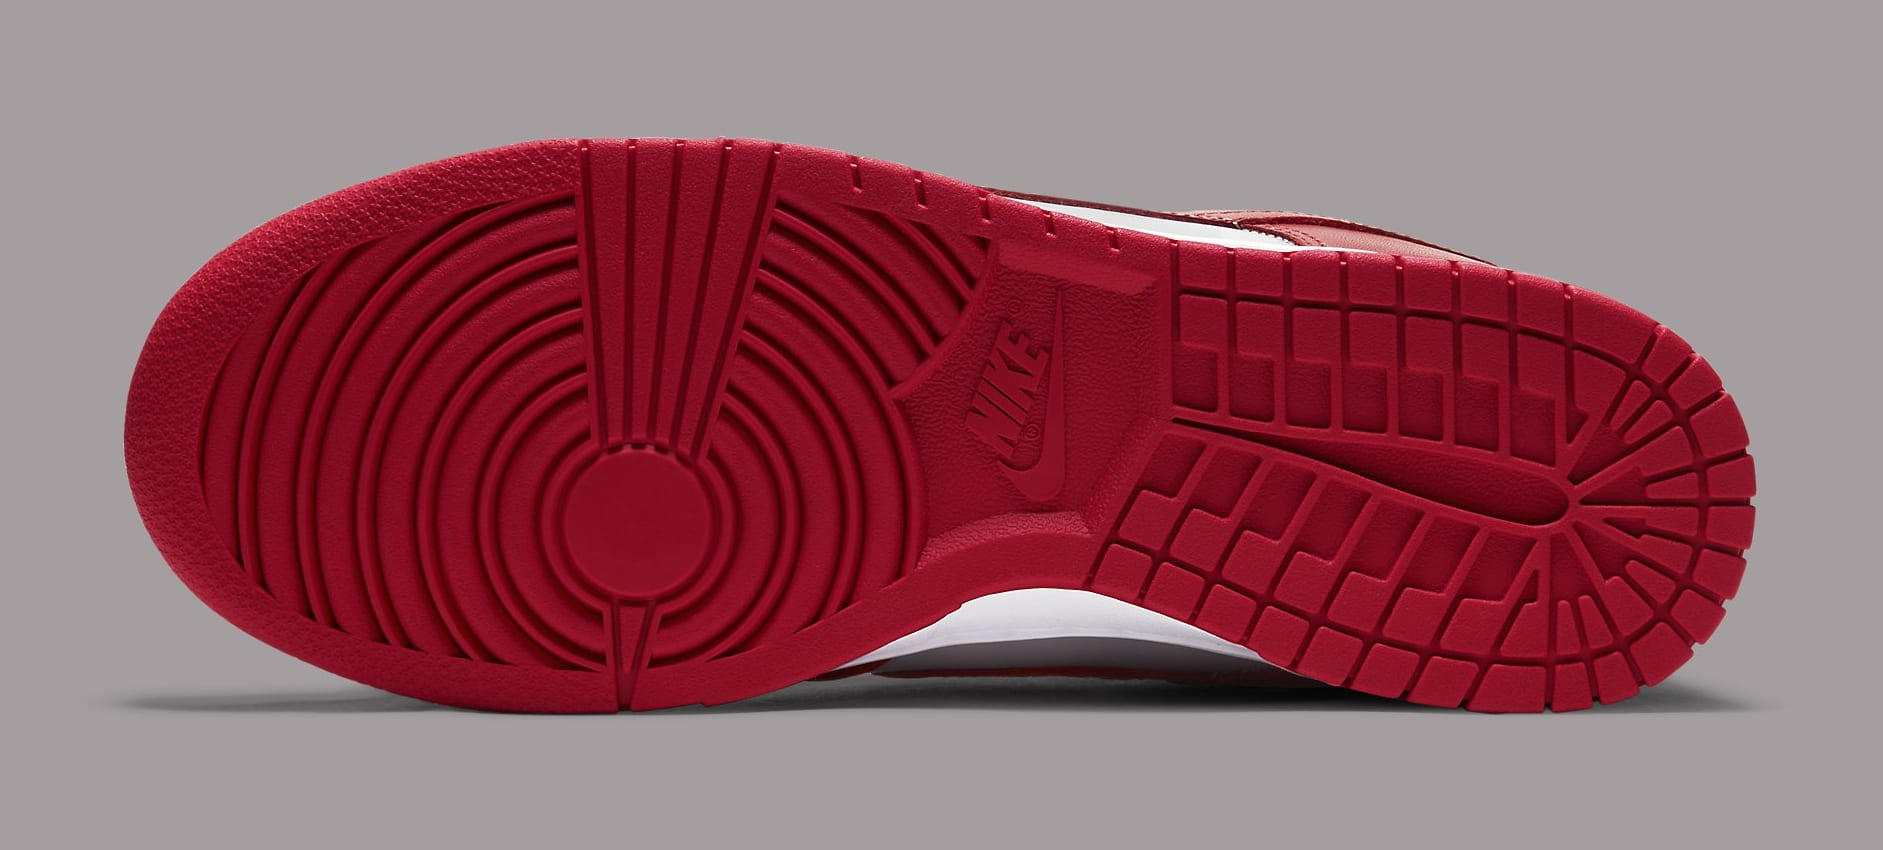 Nike Dunk Low 'UNLV' DD1391-002 Outsole